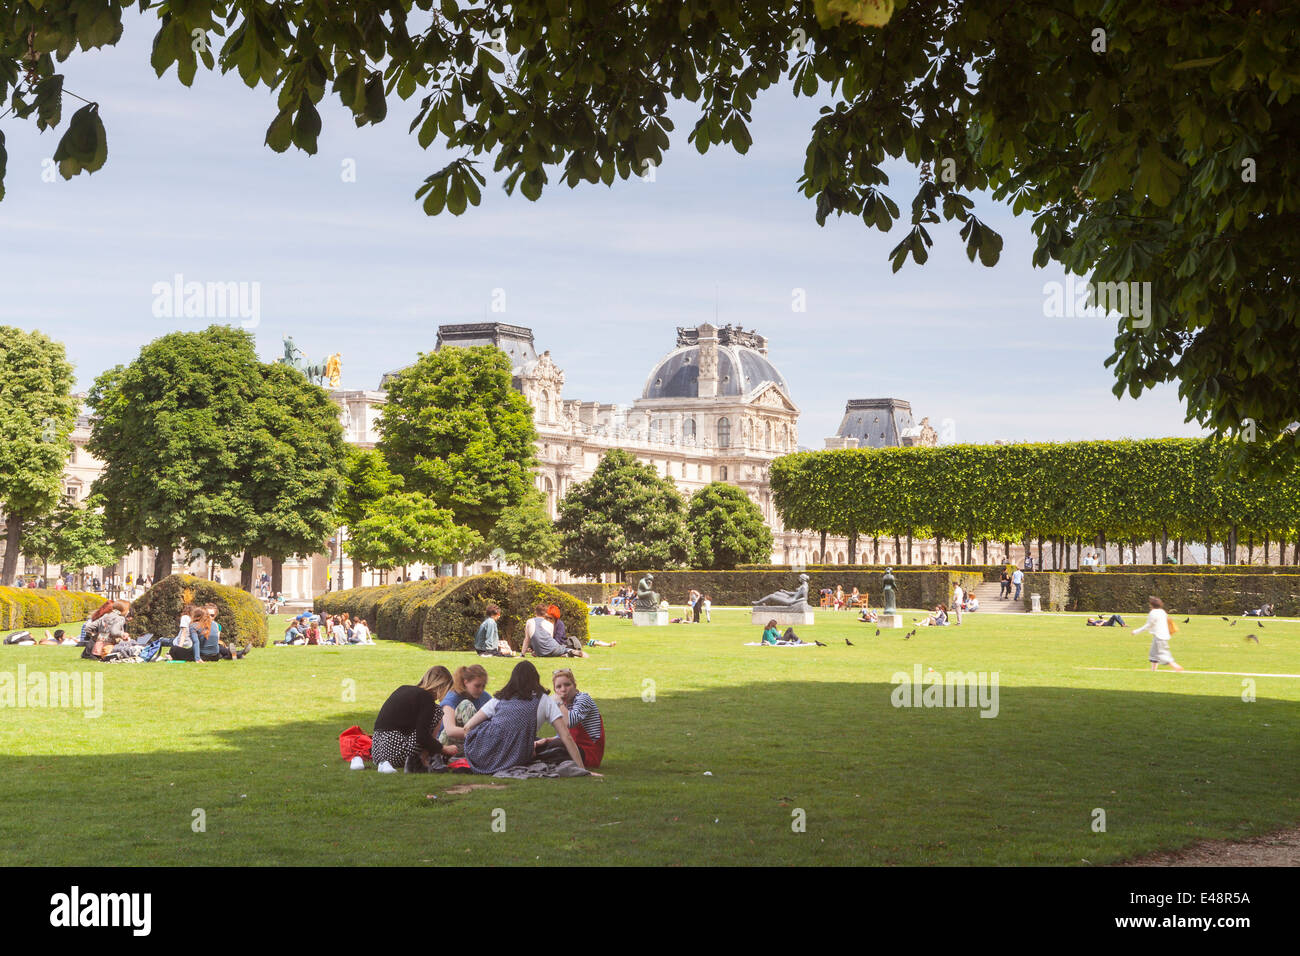 Jardin des Tuileries and the Louvre Museum, Paris. The museum is one of the largest in the World. Stock Photo